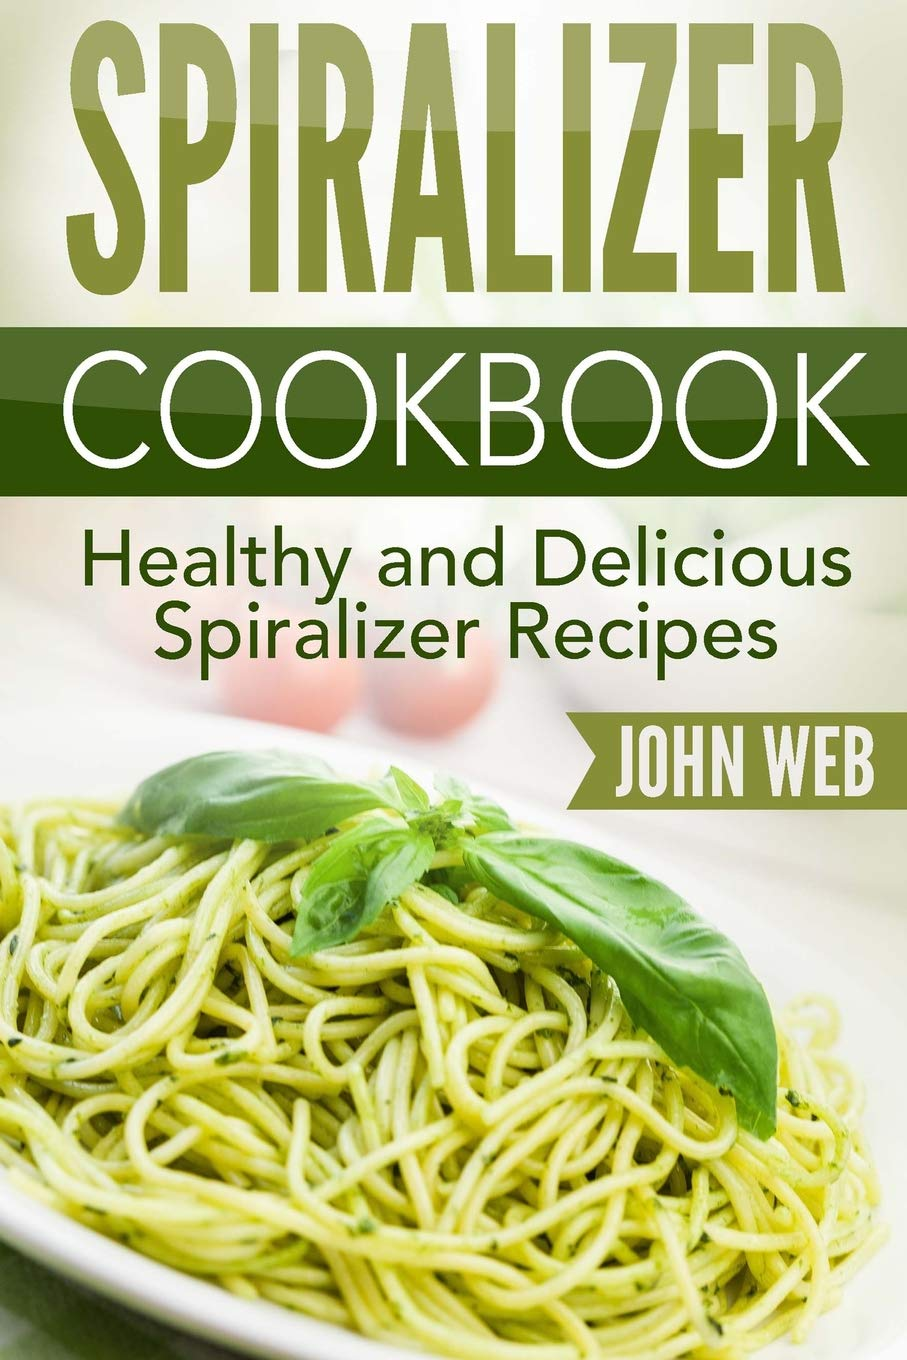 Spiralizer Cookbook Healthy Delicious Vegetable product image